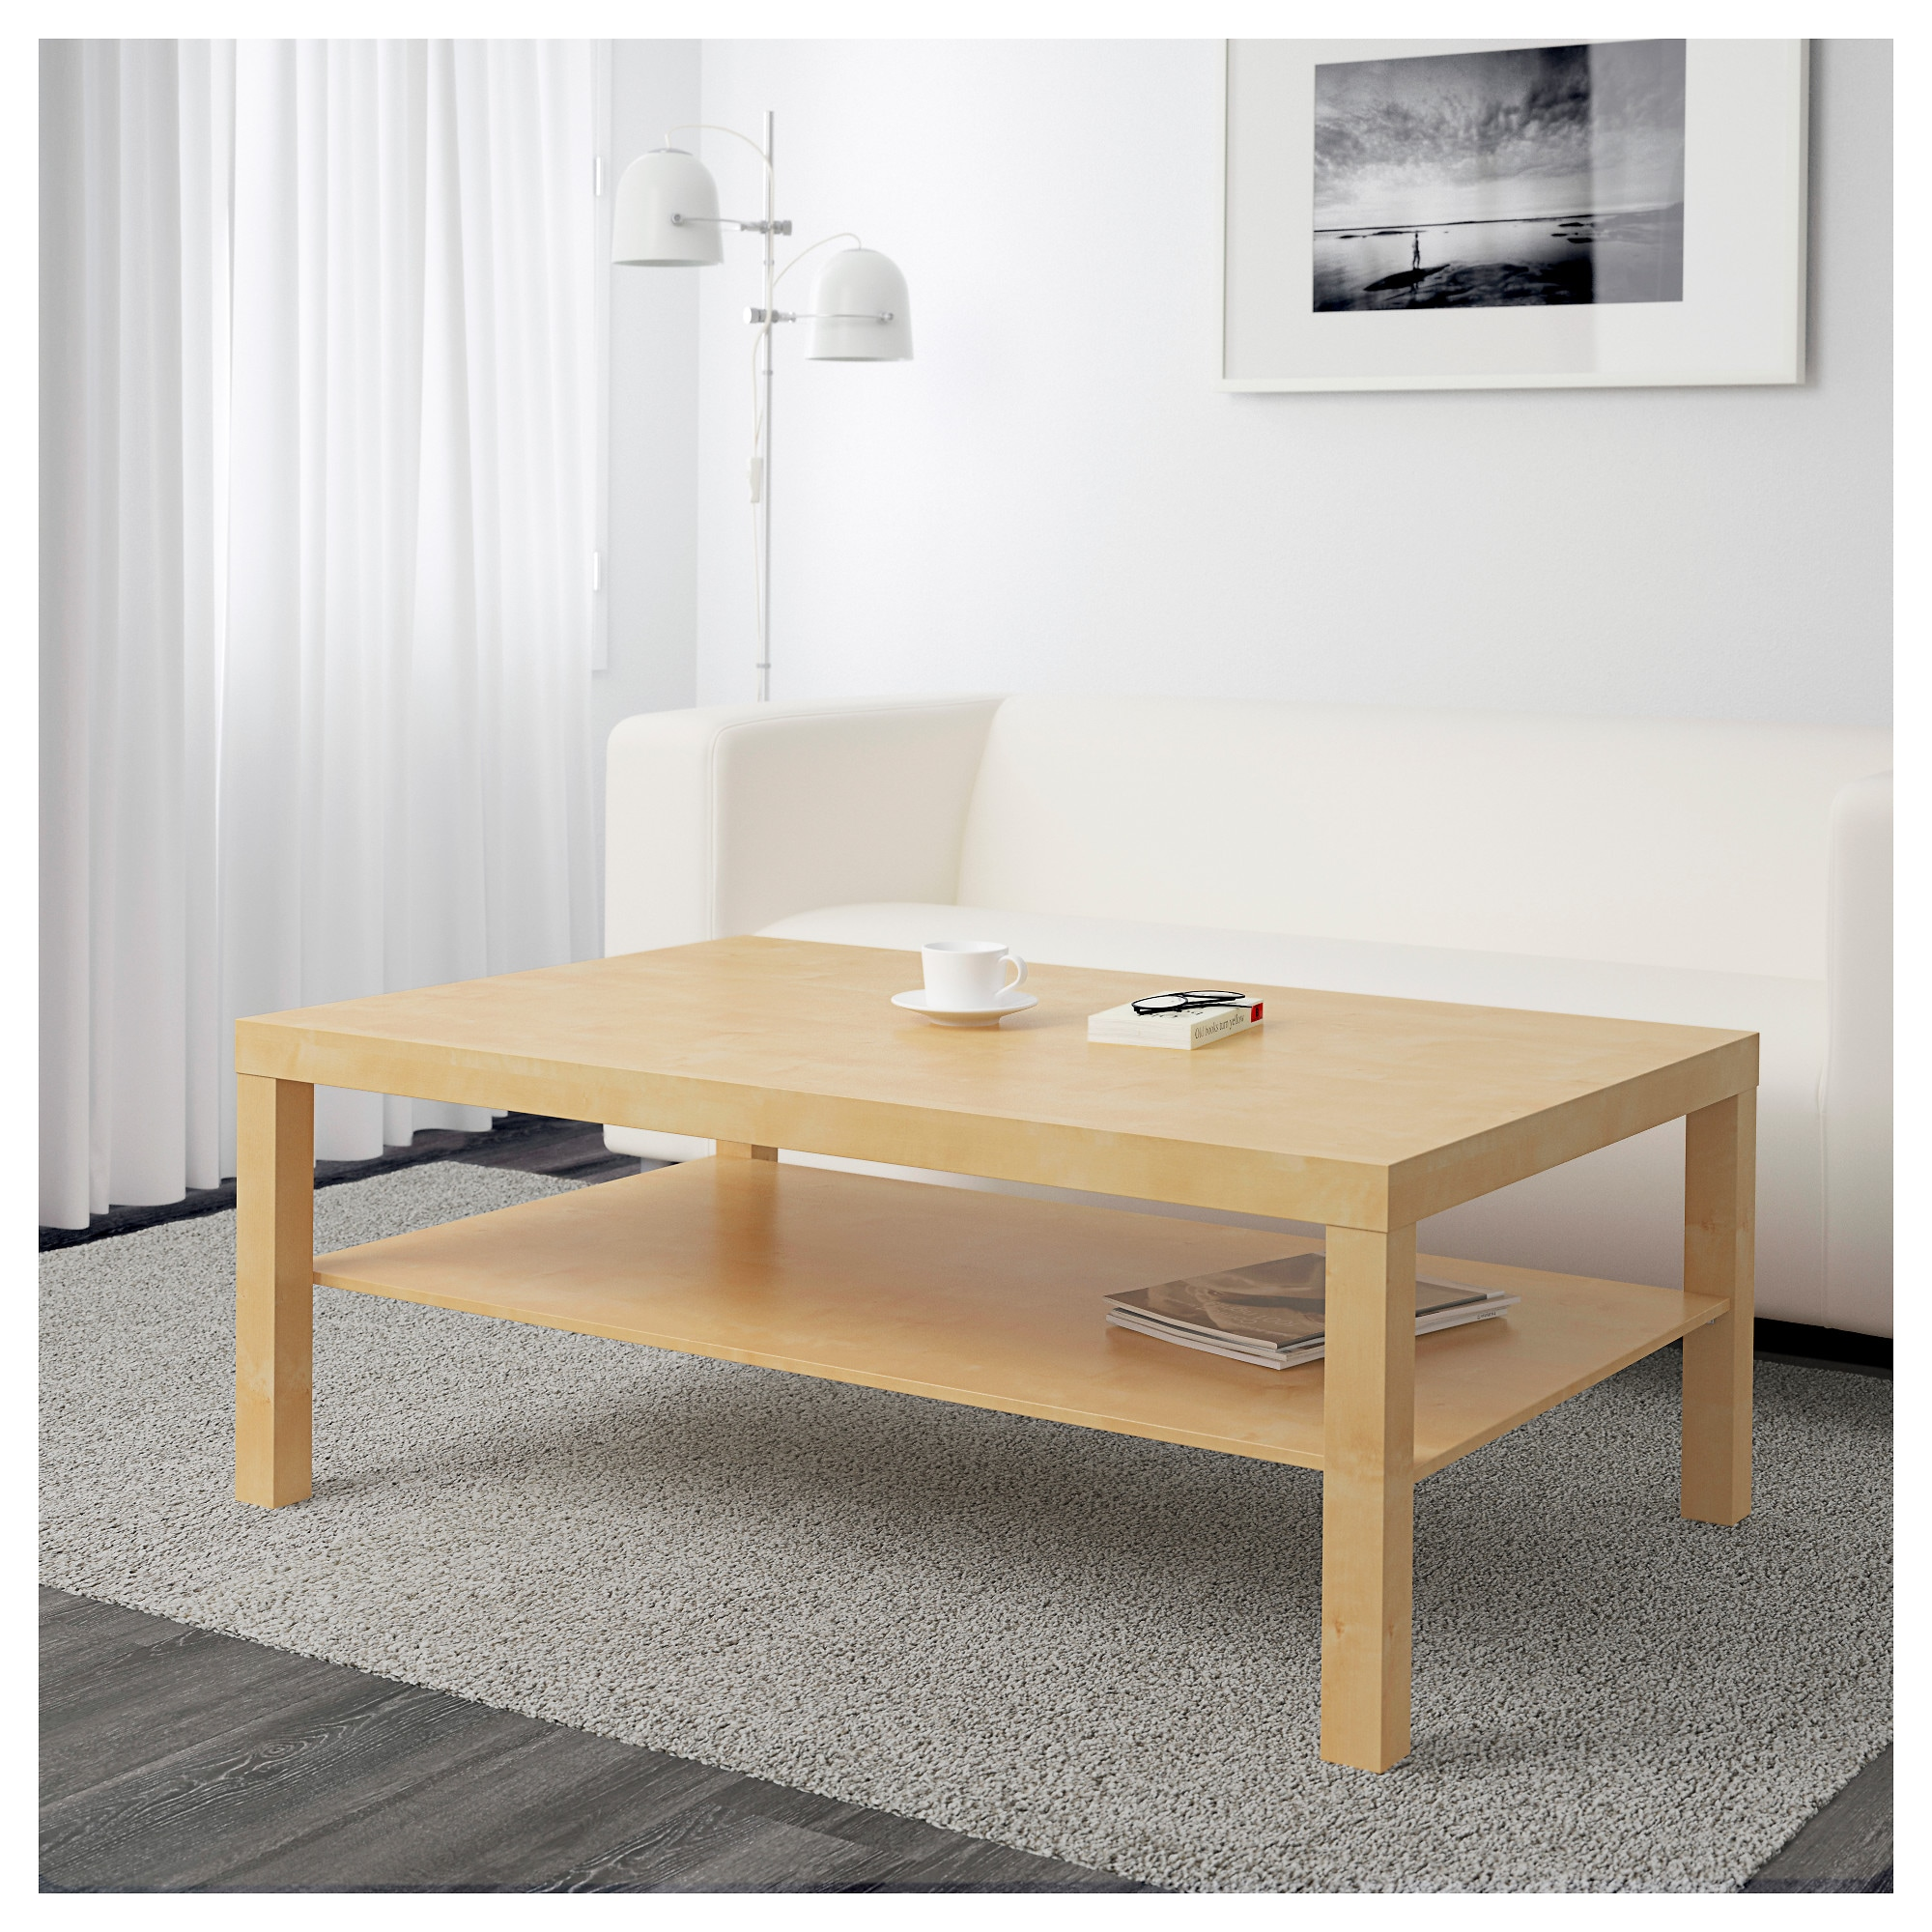 Ikea lack coffee table square images - Table basse modulable ikea ...